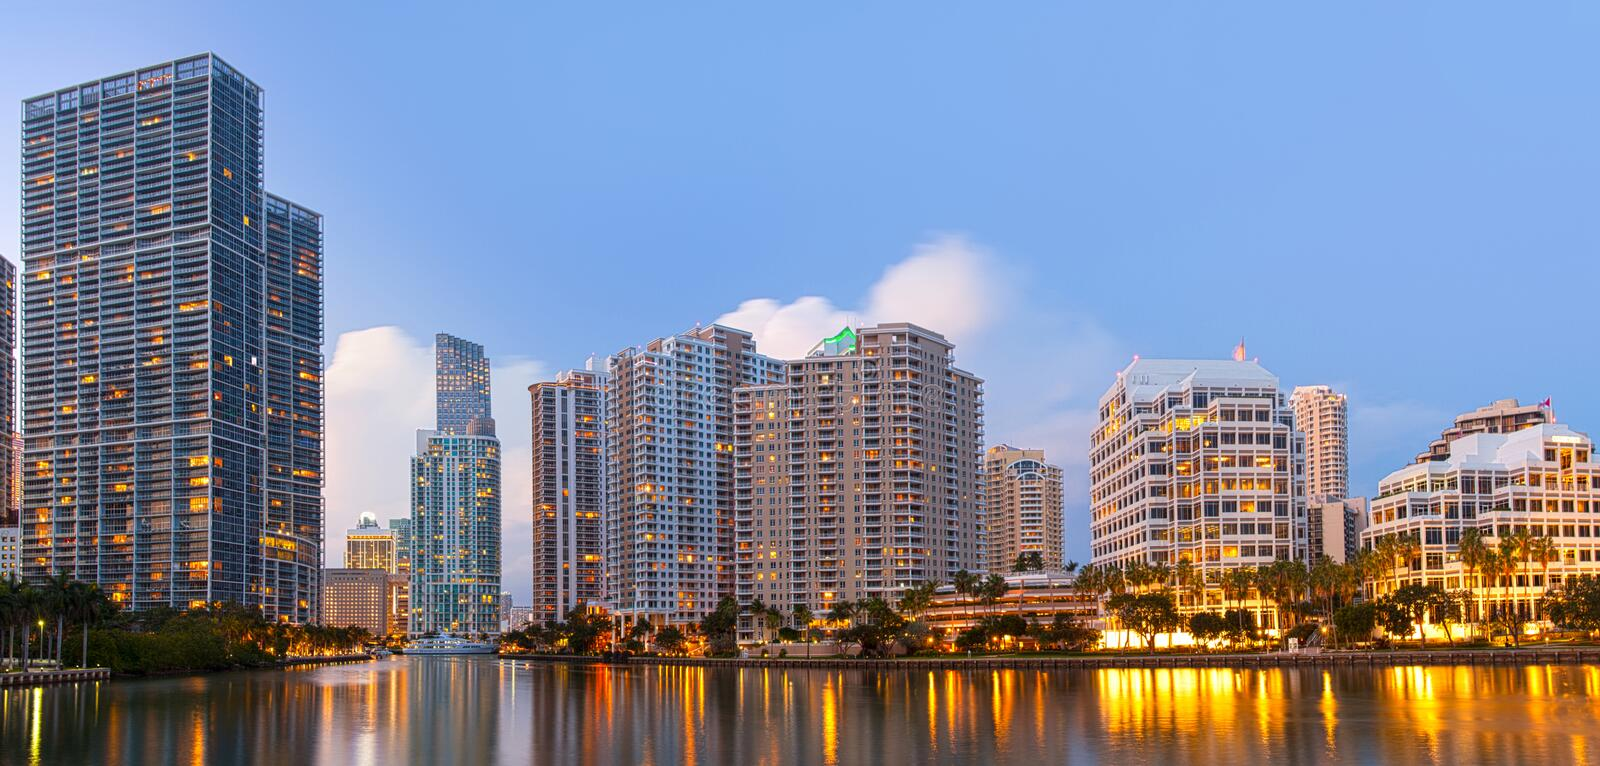 Miami Florida, Brickell and downtown financial buildings royalty free stock images